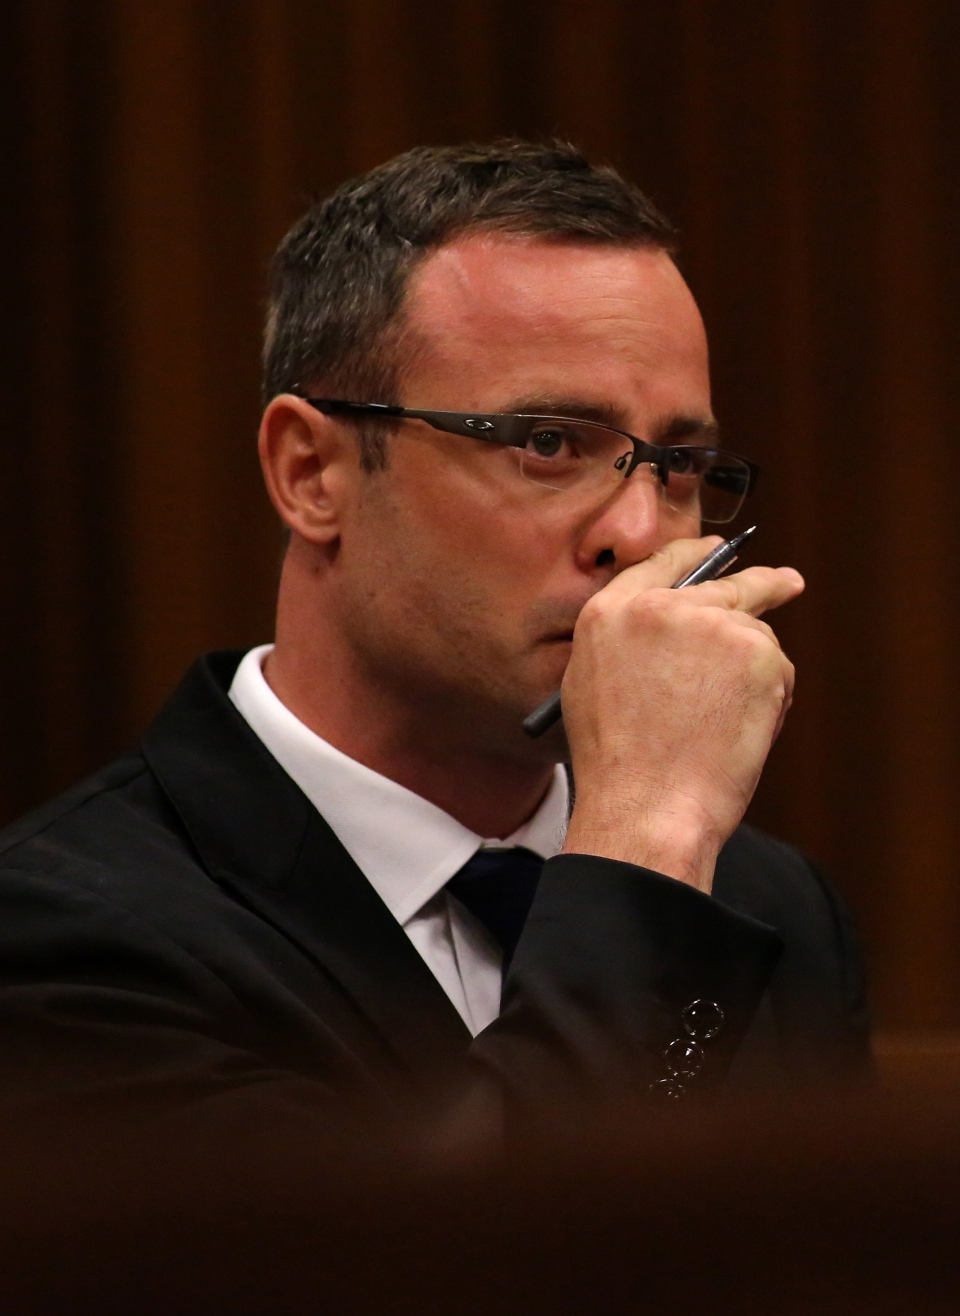 Oscar Pistorius listens to cross questioning in court in Pretoria, South Africa, Monday, March 17, 2014. (AP / Siphiwe Sibeko)